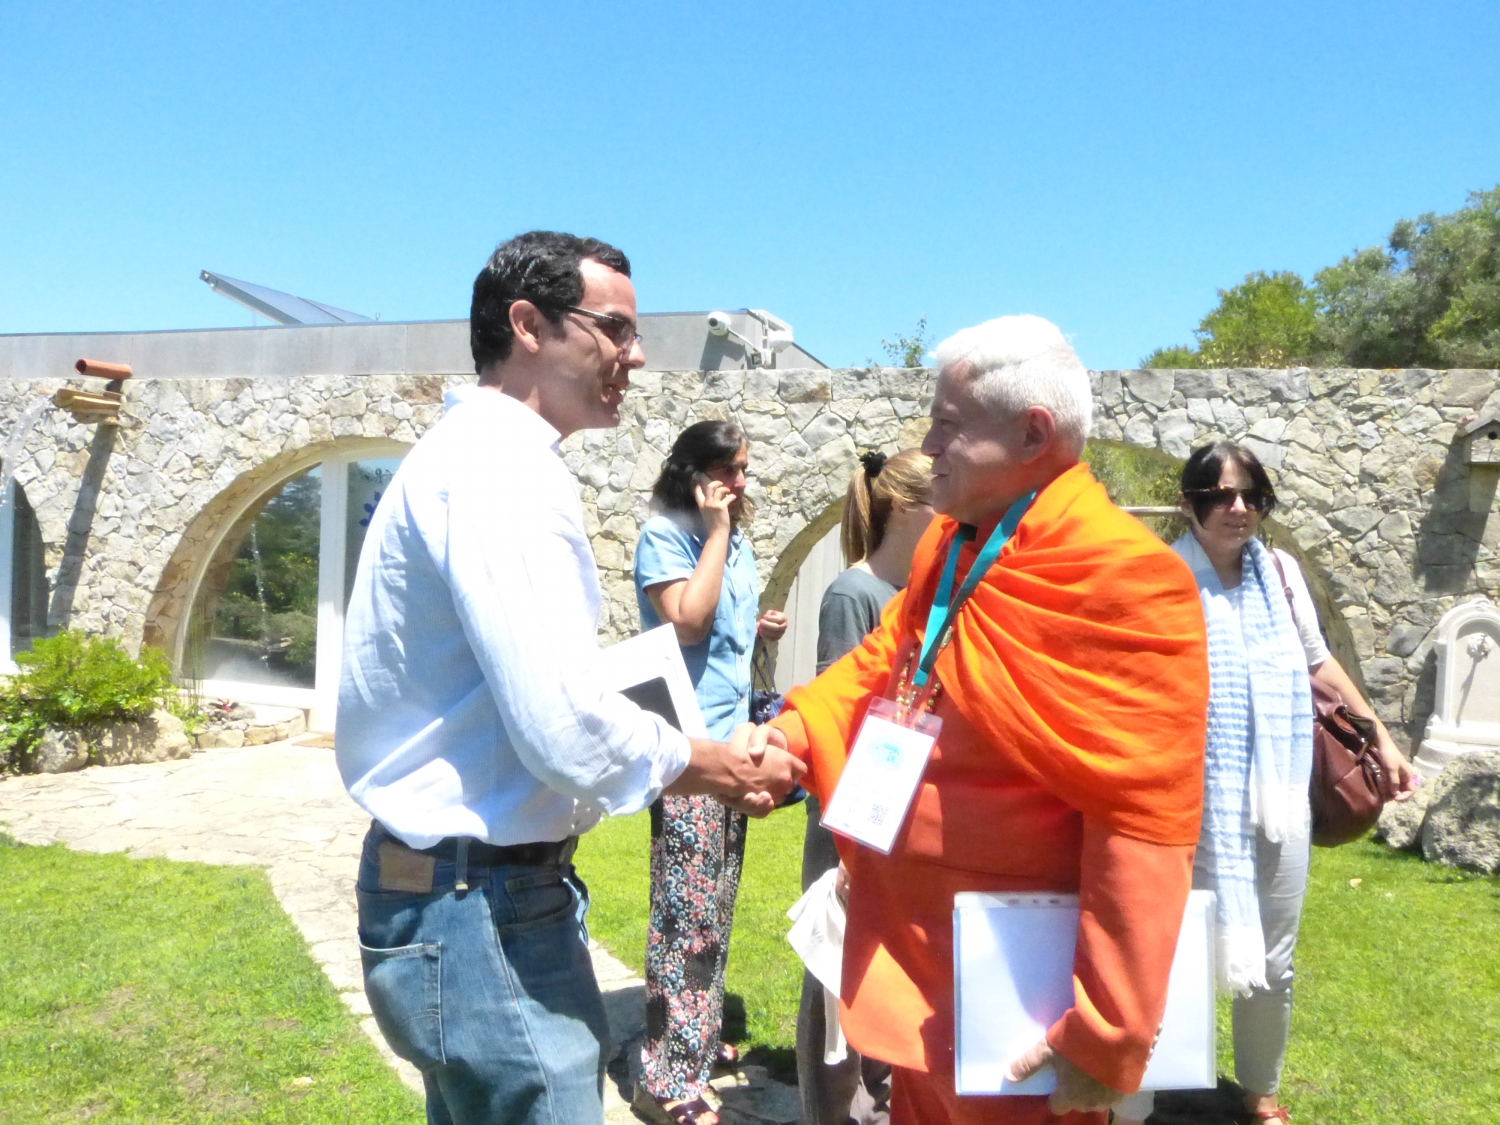 H.H. Jagat Guru Amrta Súryánanda Mahá Rája with the High Commissioner for Migrations, Dr. Pedro Calado